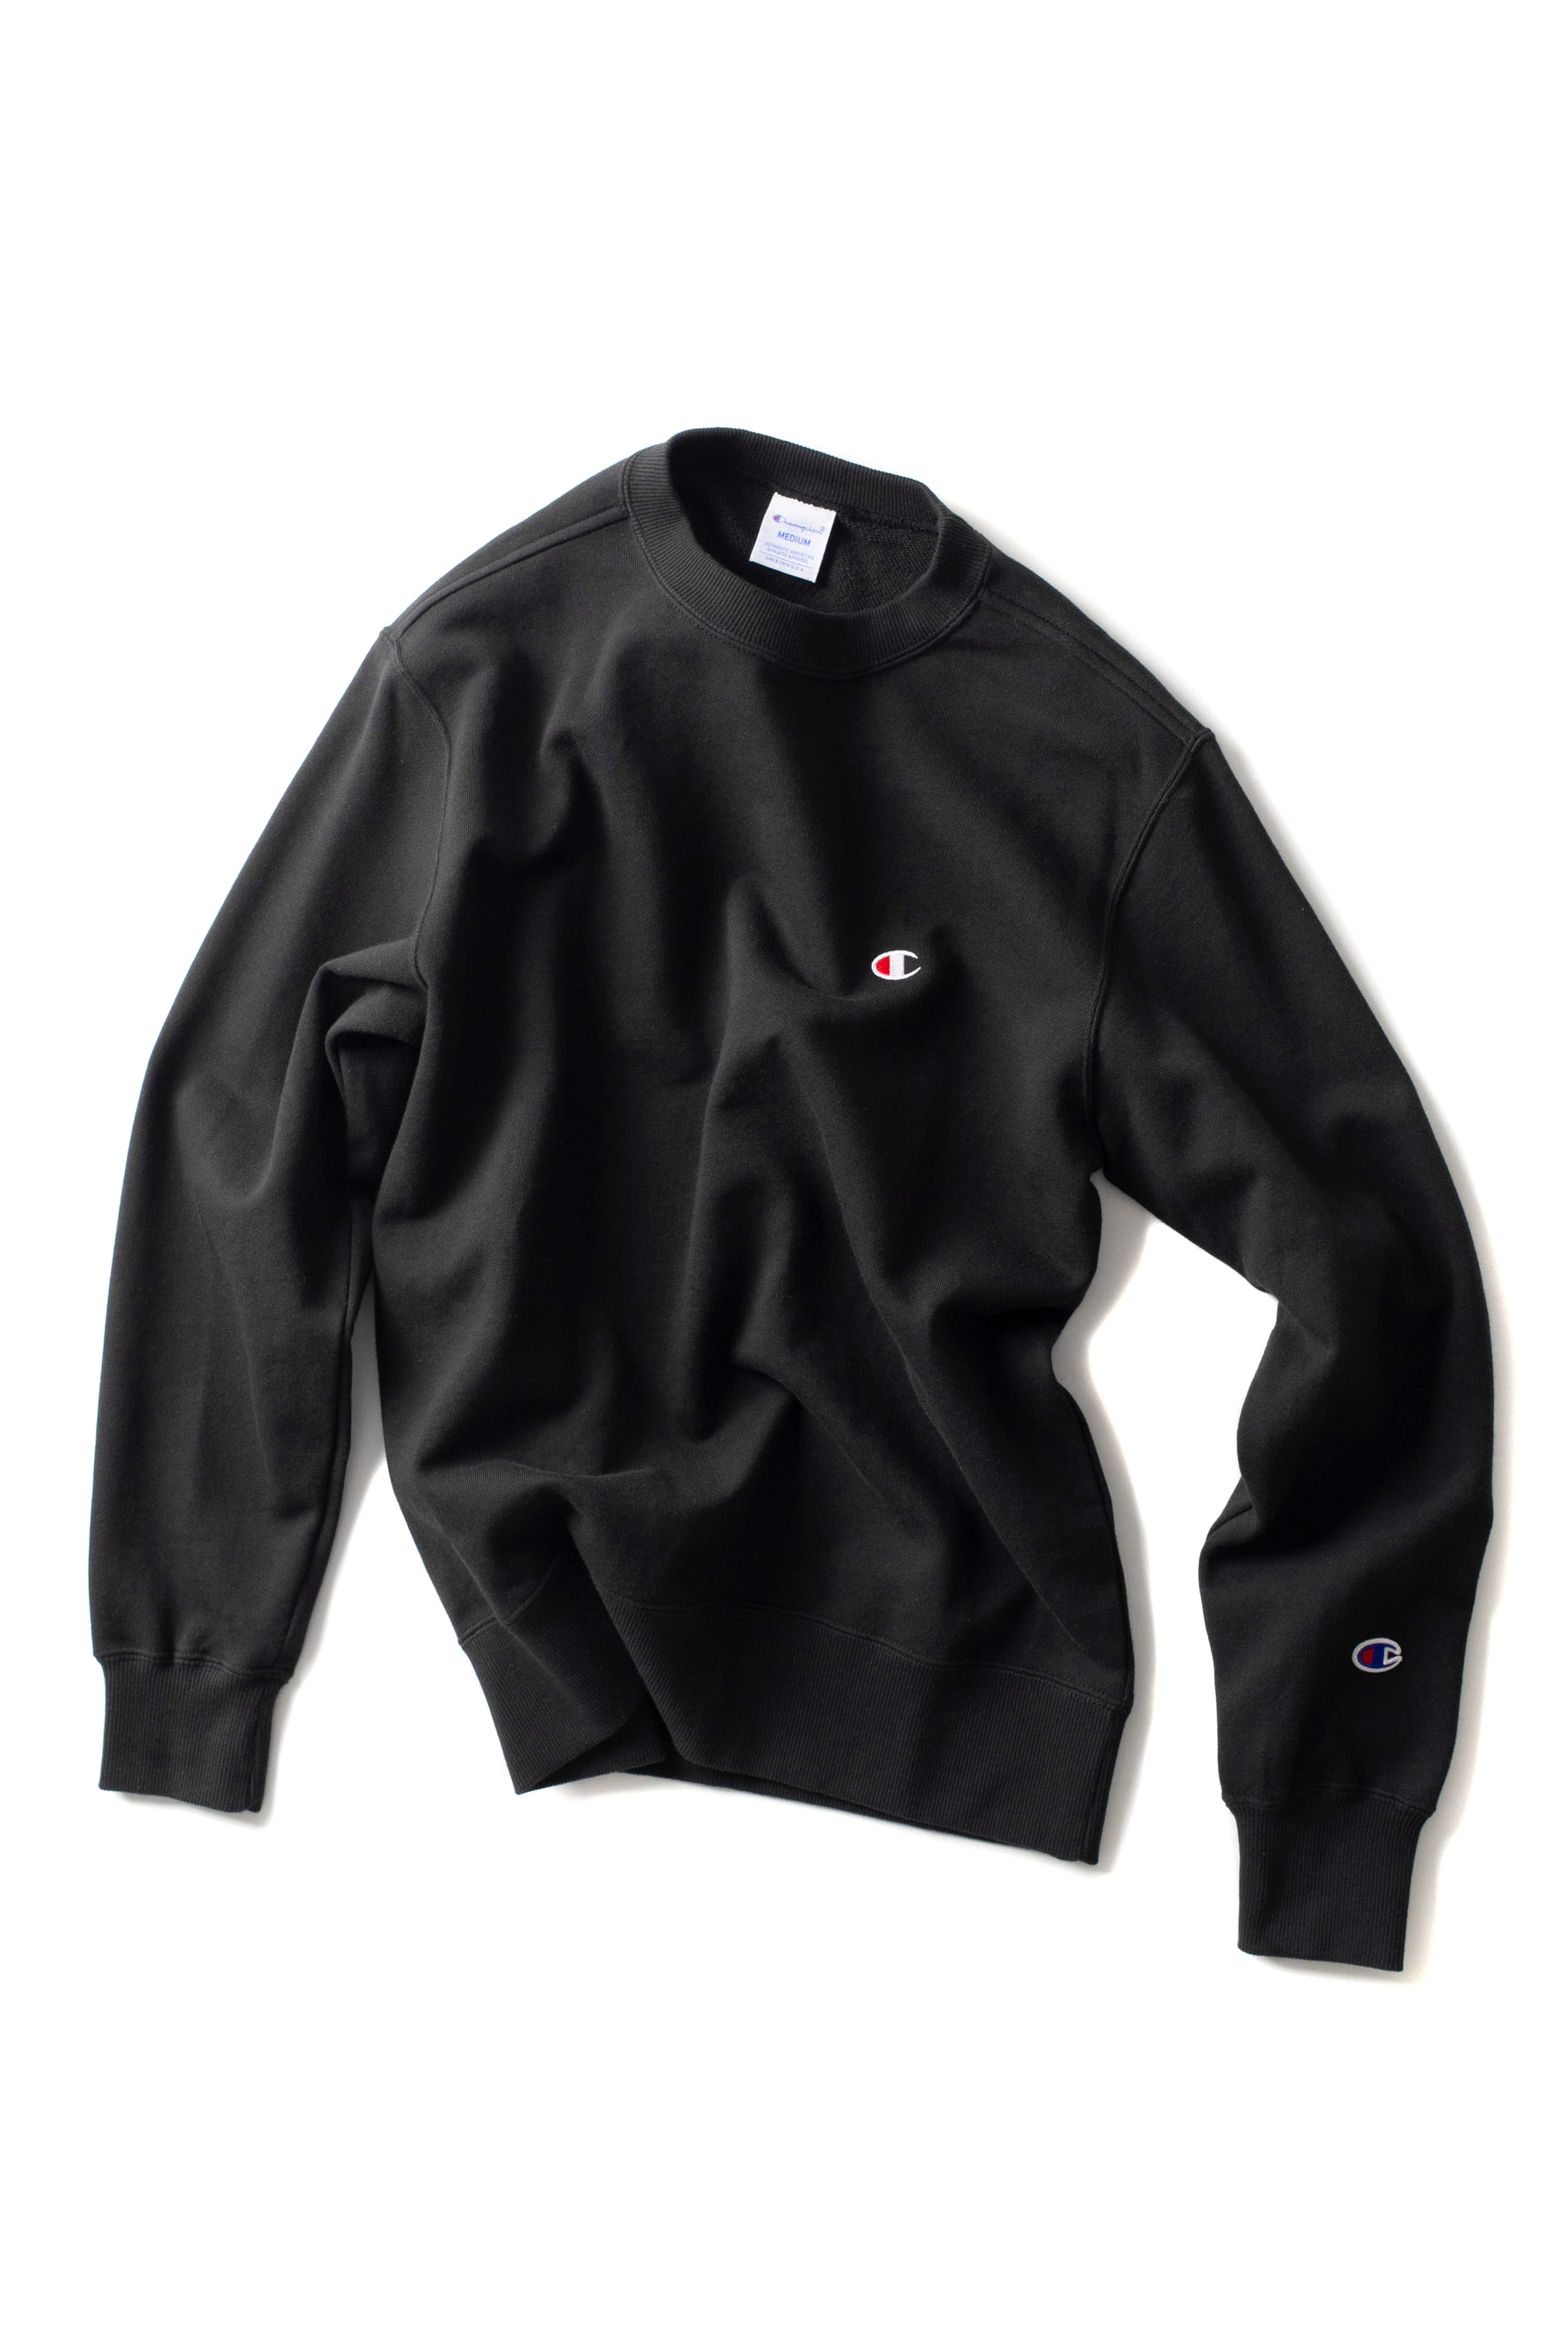 Champion : Basic Crewneck Sweat Shirt (Black)